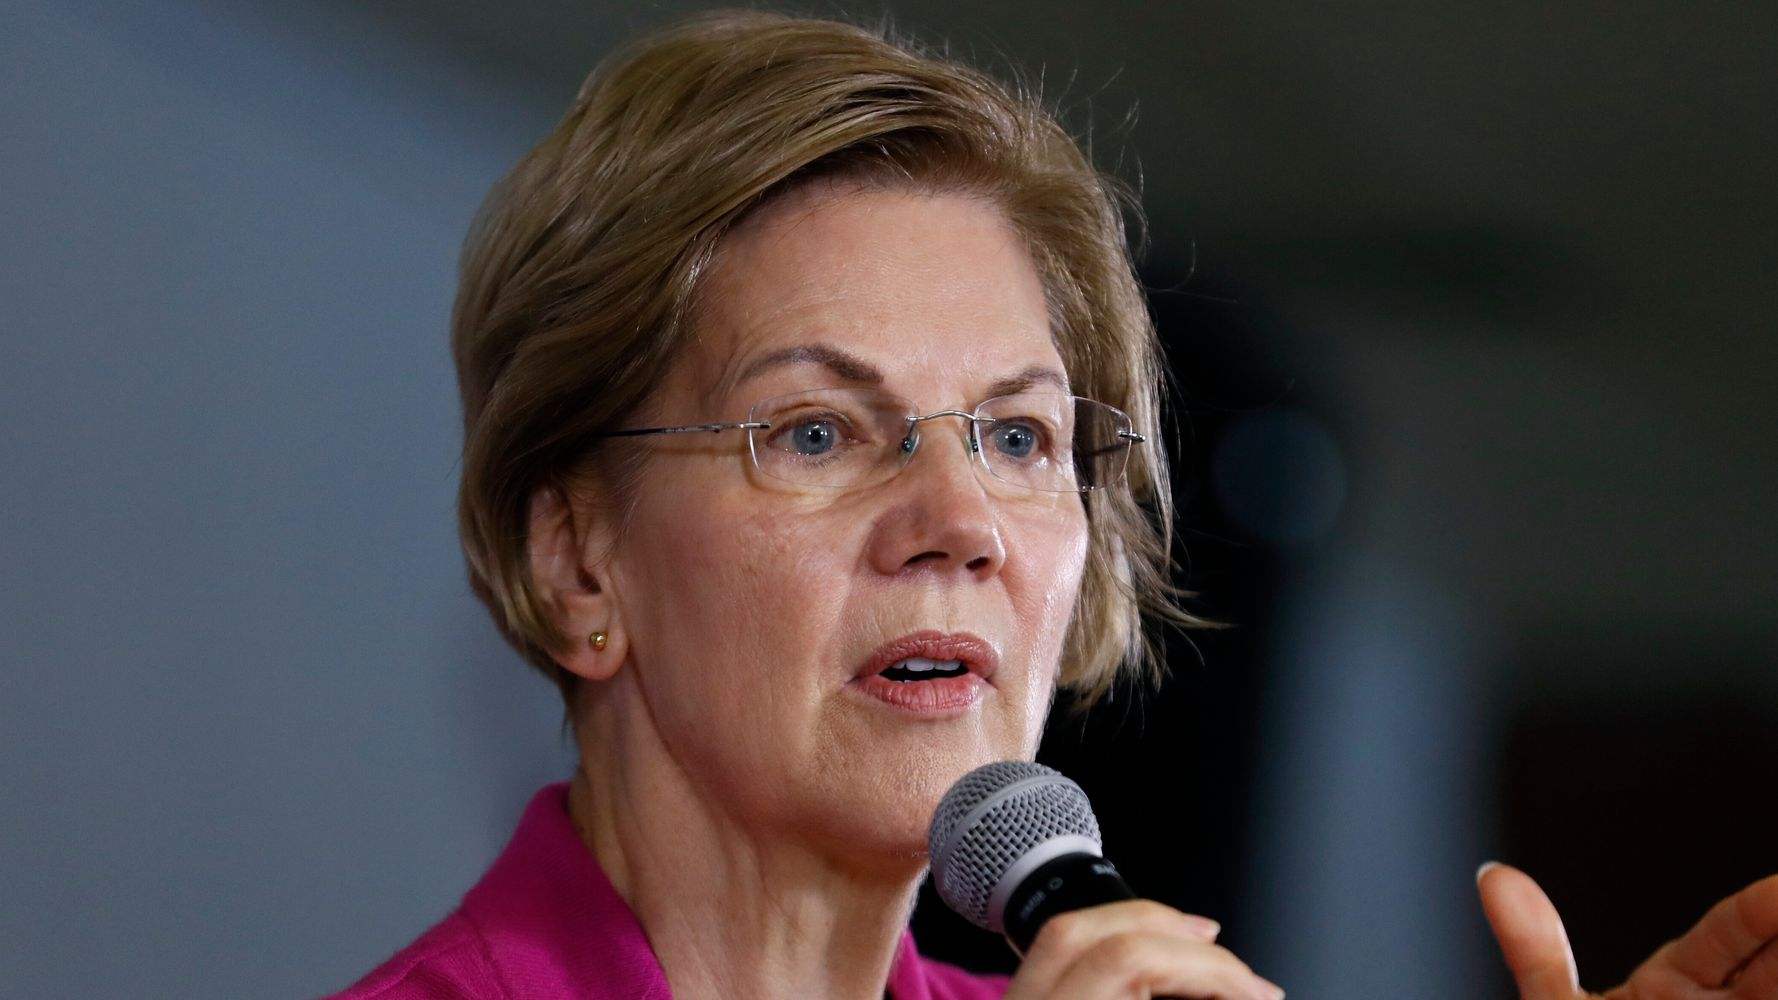 Westlake Legal Group 5e0c596c2400009f245a4ad2 Elizabeth Warren Rips 'Fawning, Spineless' Republicans In End-Of-Year Speech